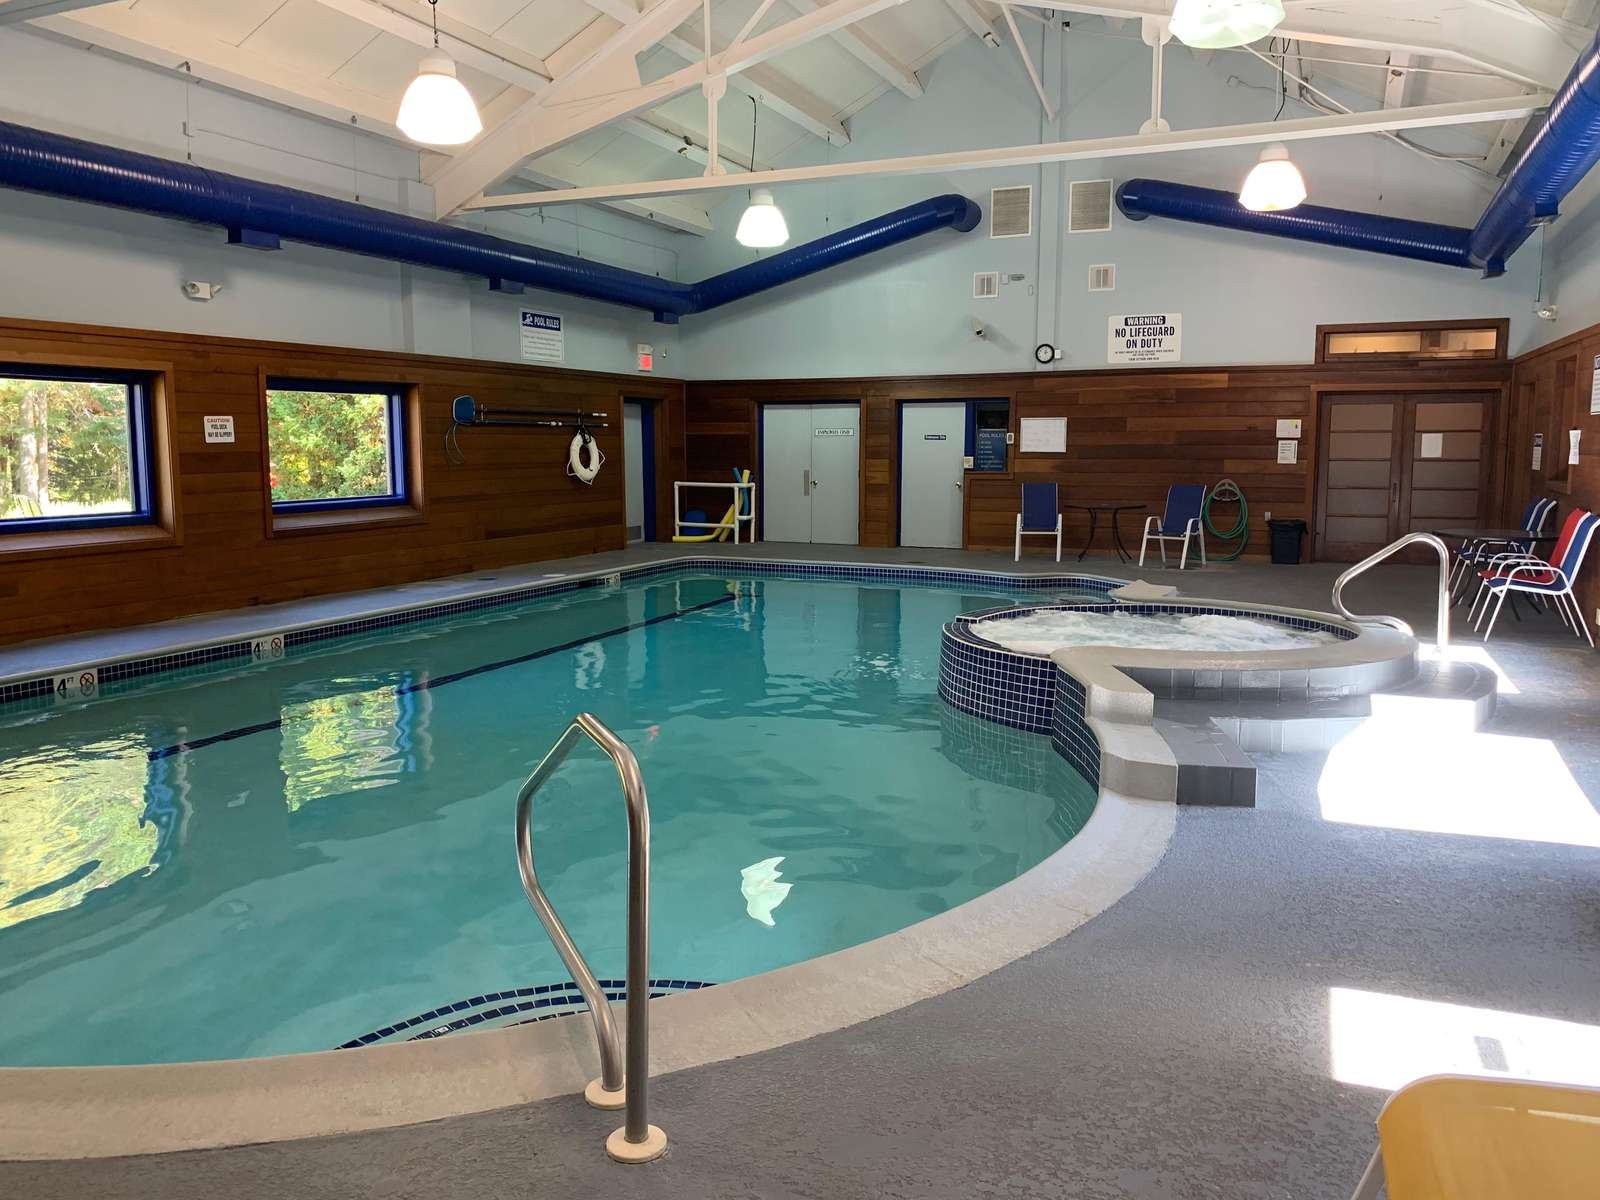 Pool & Hot Tub in Sugarhouse Amenity Center